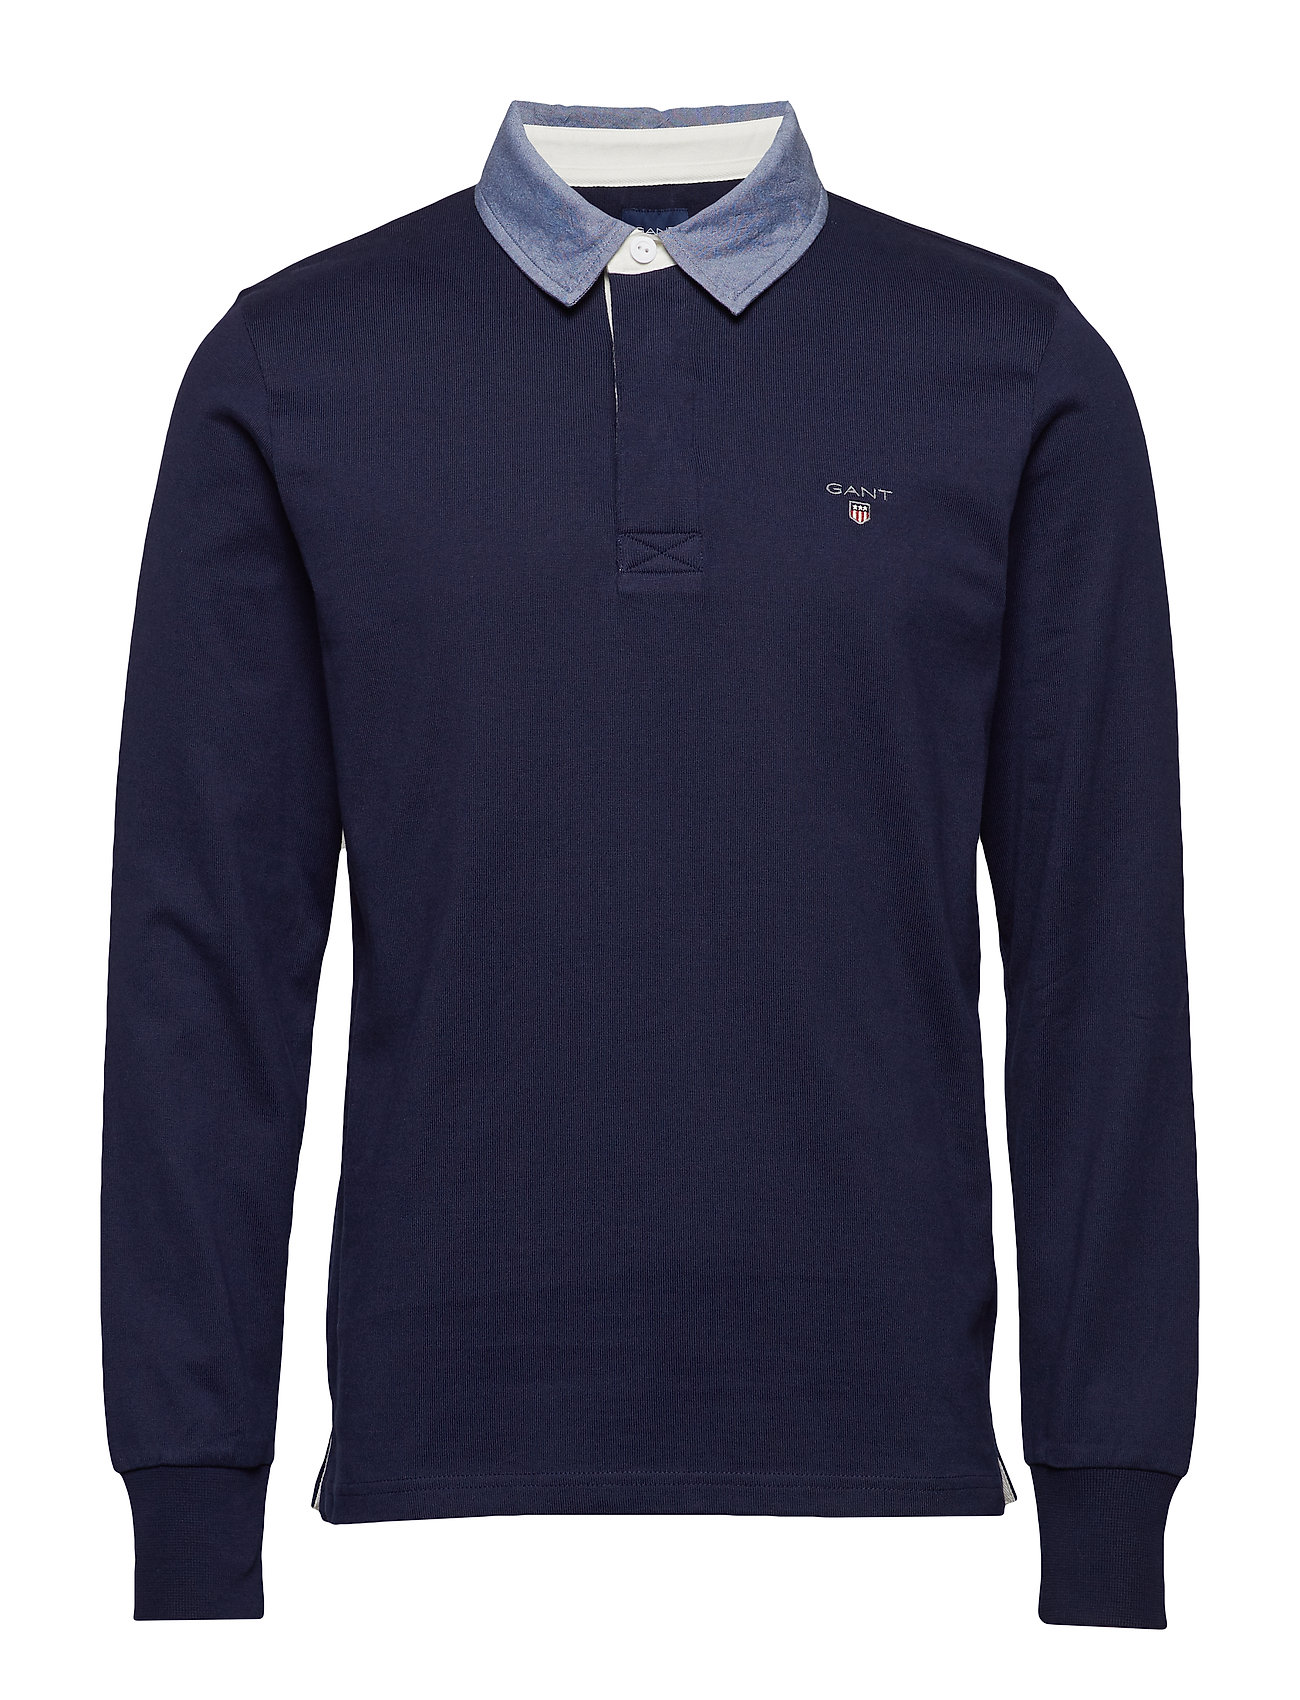 Gant THE ORIGINAL HEAVY RUGGER - EVENING BLUE